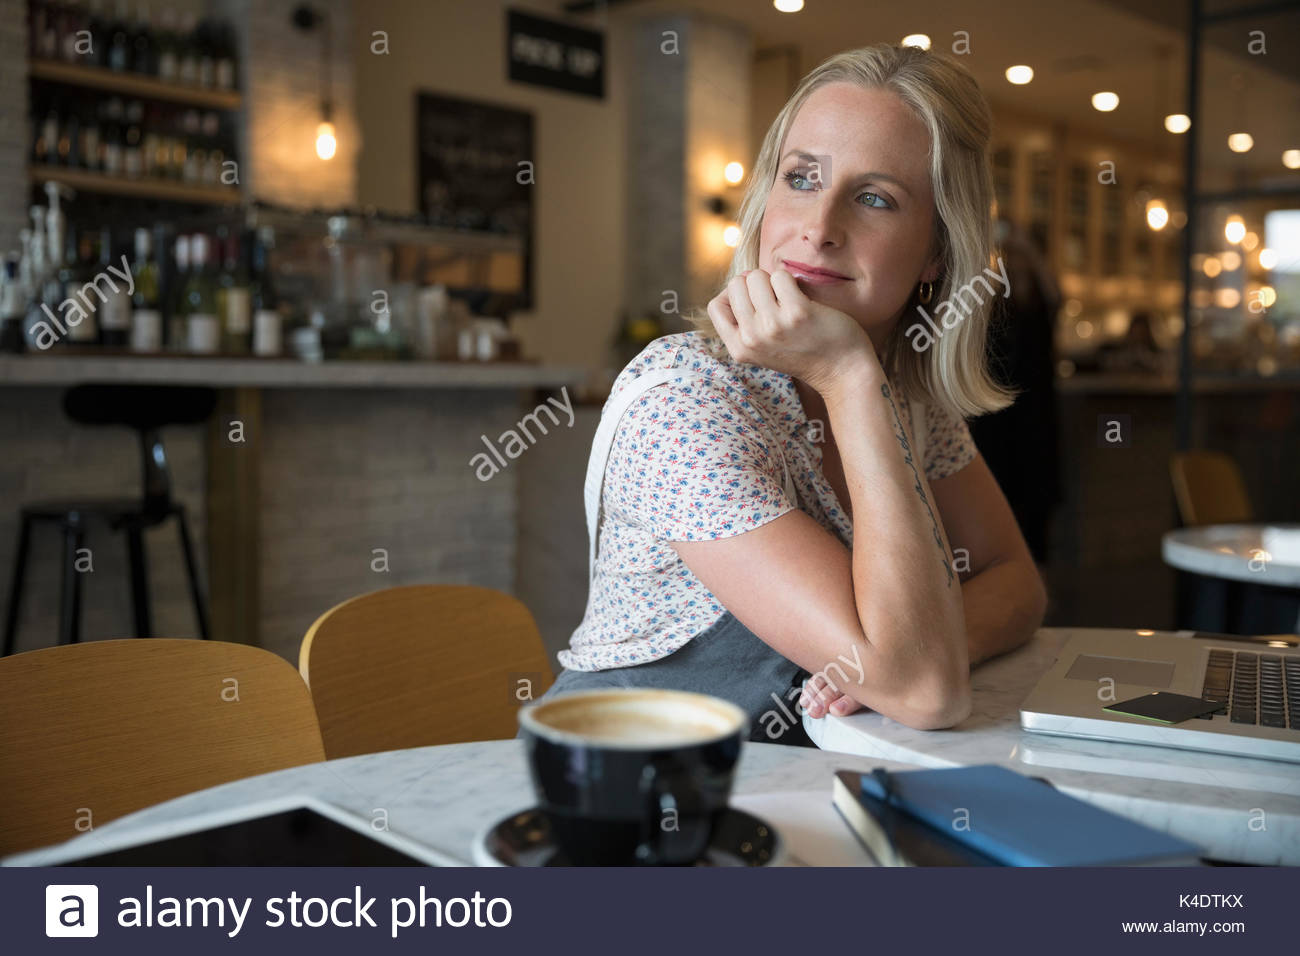 Smiling pensive woman, looking over Shoulder in cafe Photo Stock